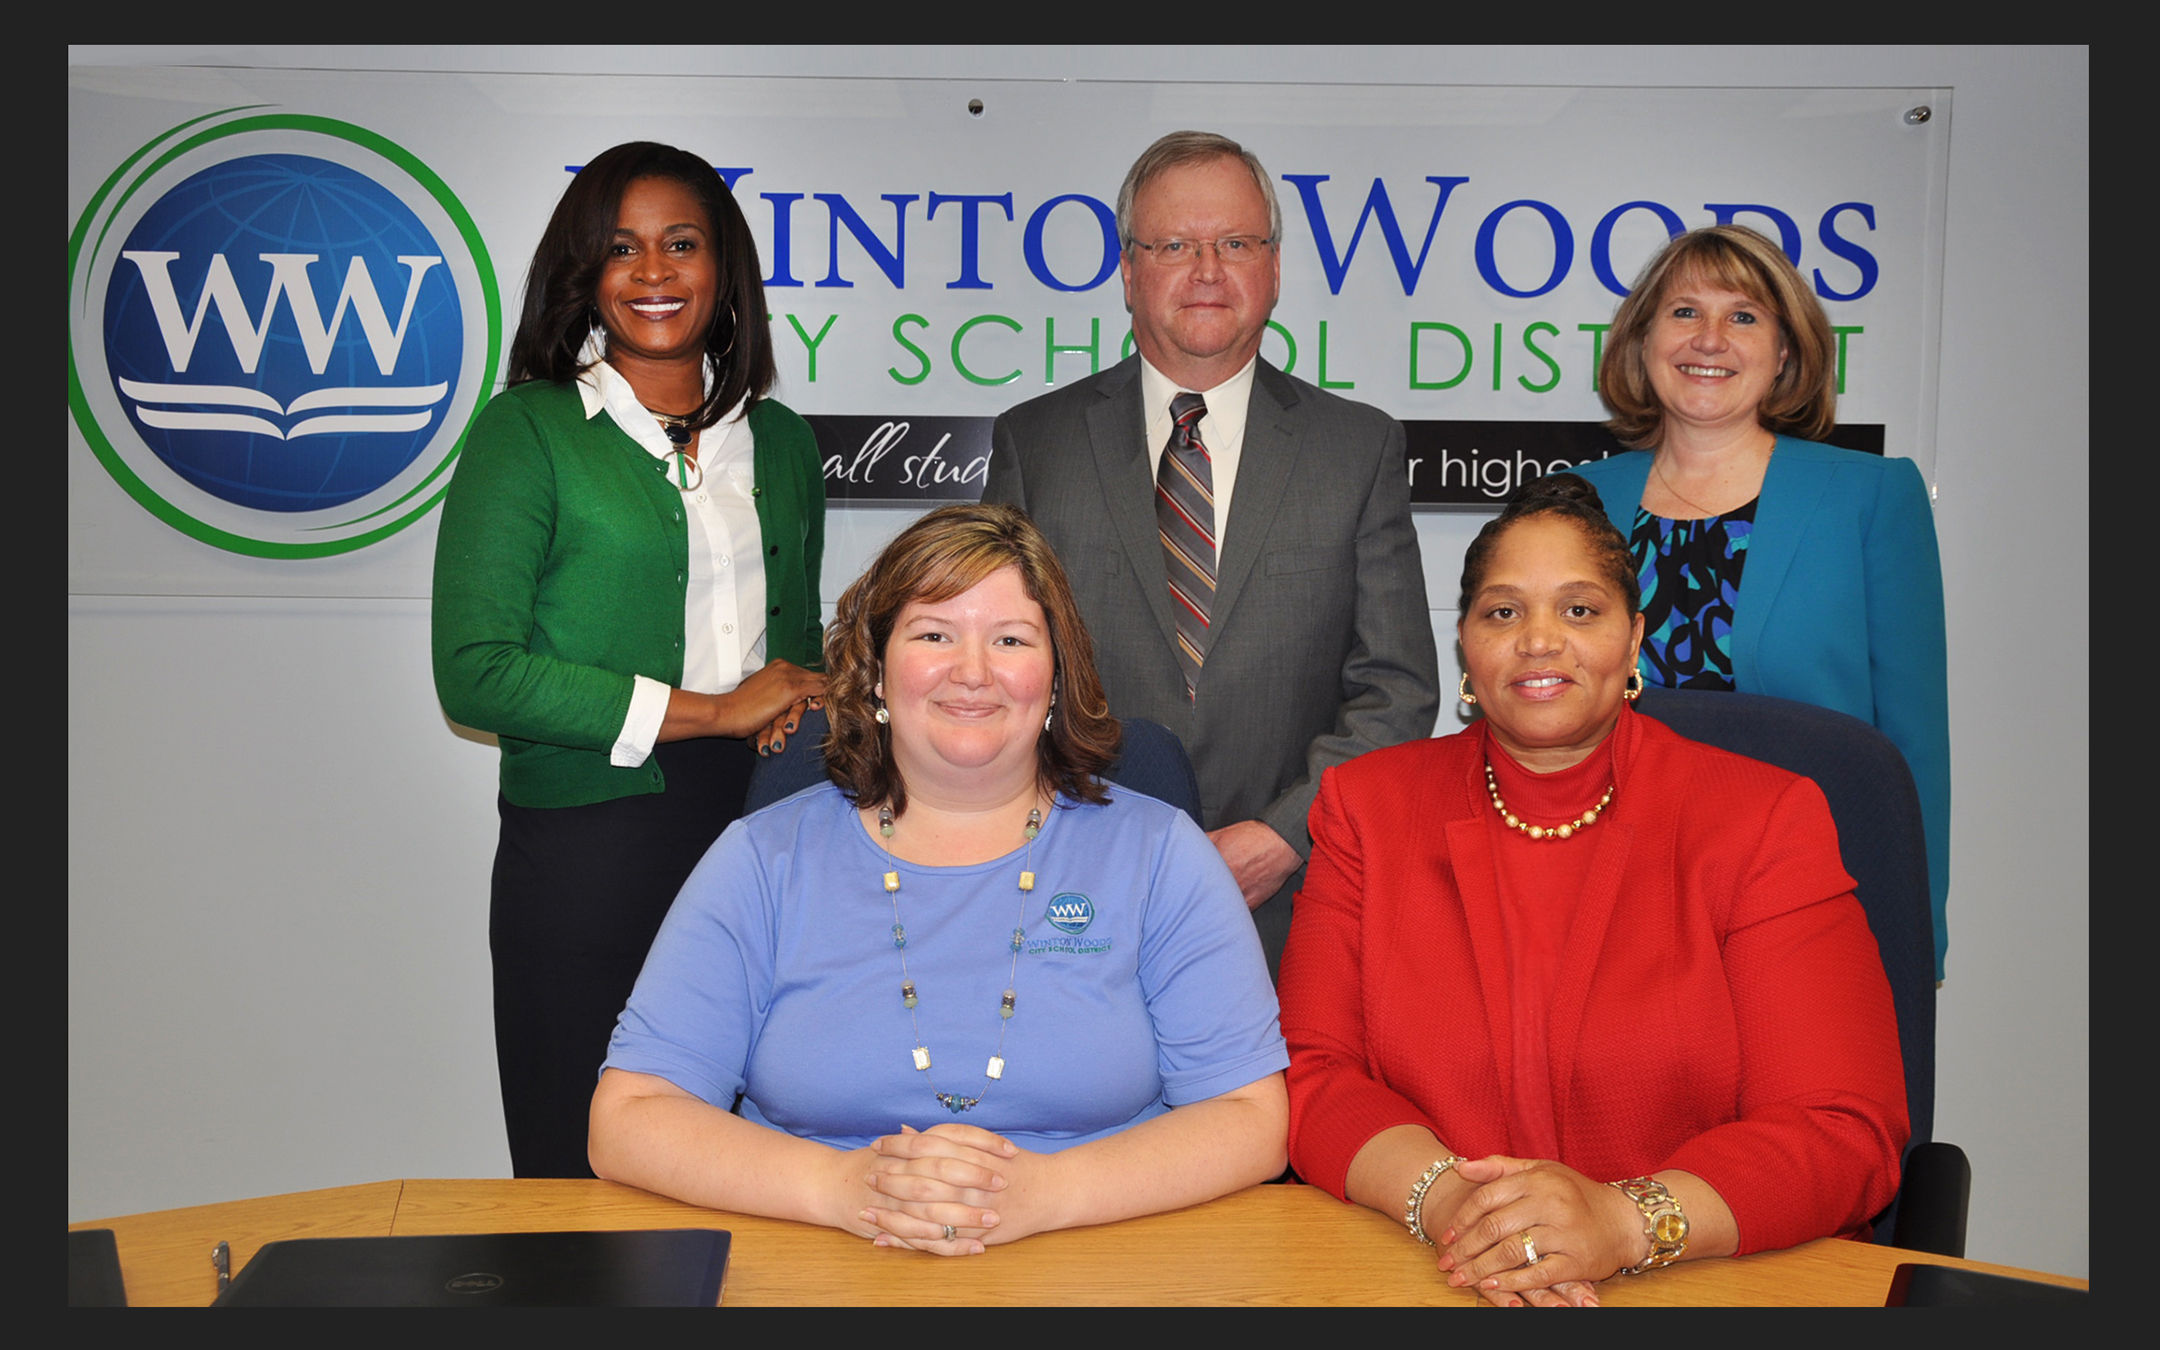 Winton Woods Board of Education